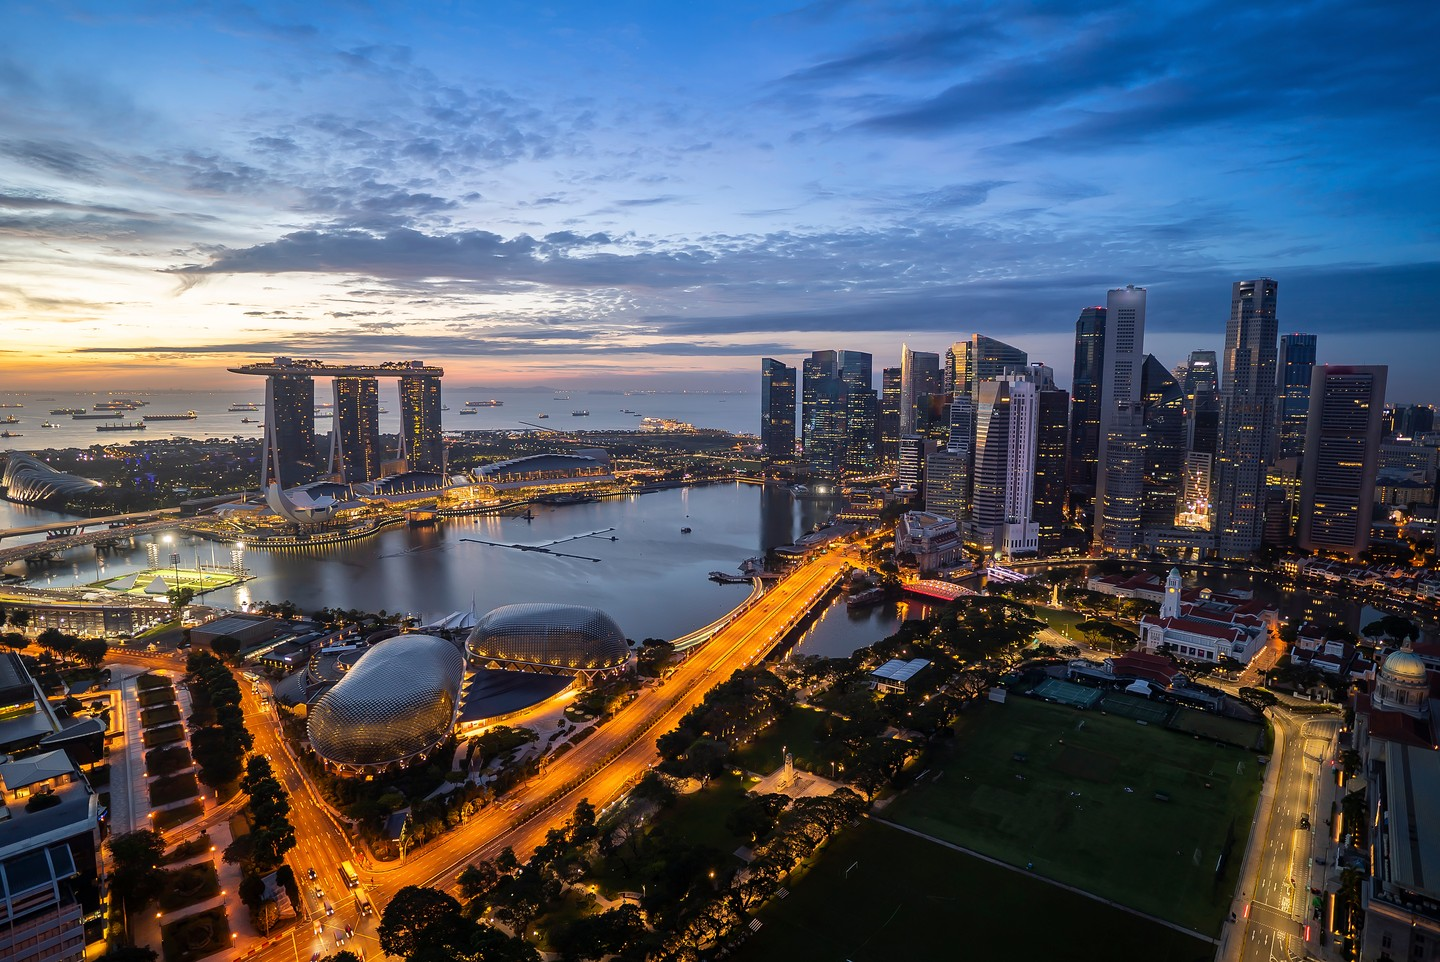 Aerial view of dramatic sunrise at Singapore city skyline